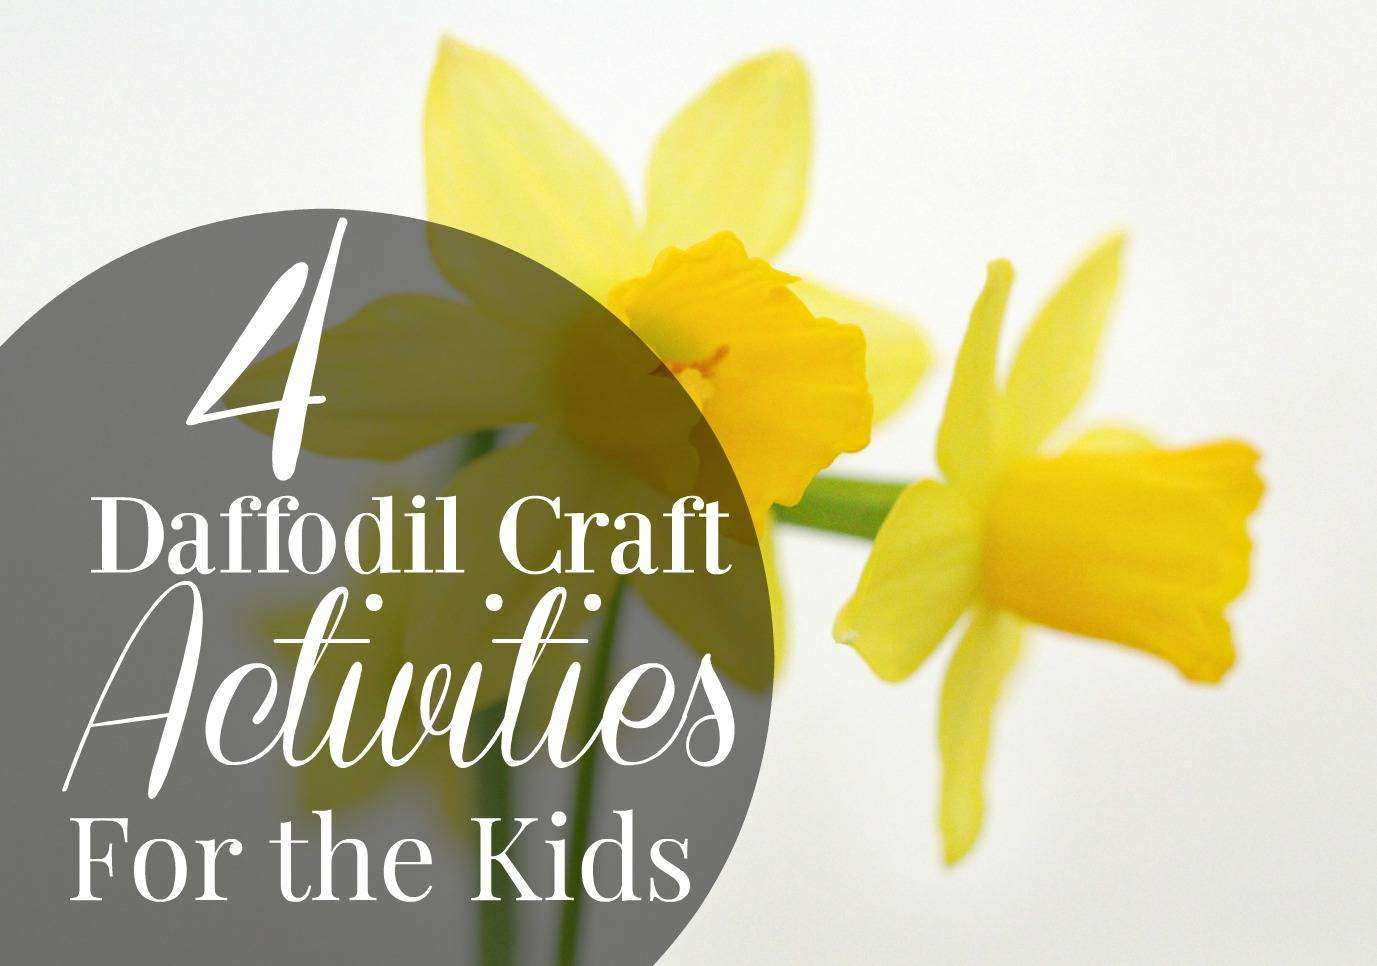 4 Daffodil Craft Activities for the Kids; Marie Curie's Daffodil Campaign, Marie Curie Daffodil %, community%